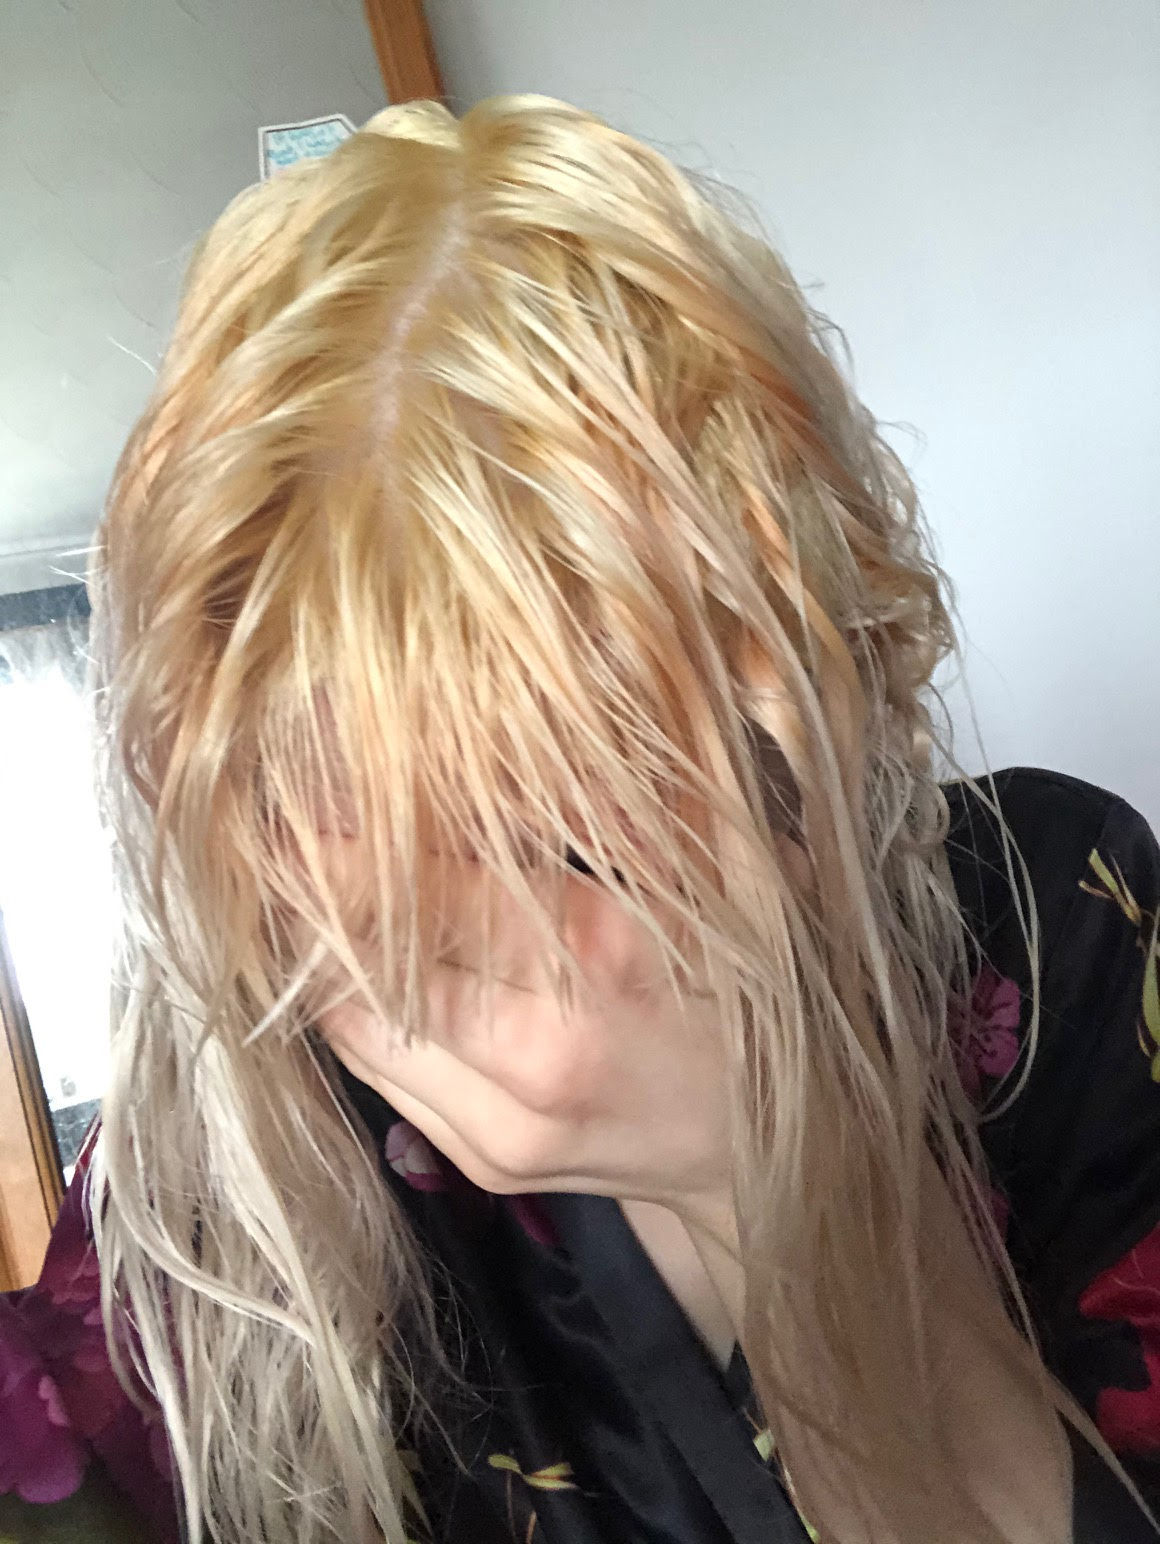 My freshly bleached roots before applying bleach london champagne super toner. They're pretty yellow tbh